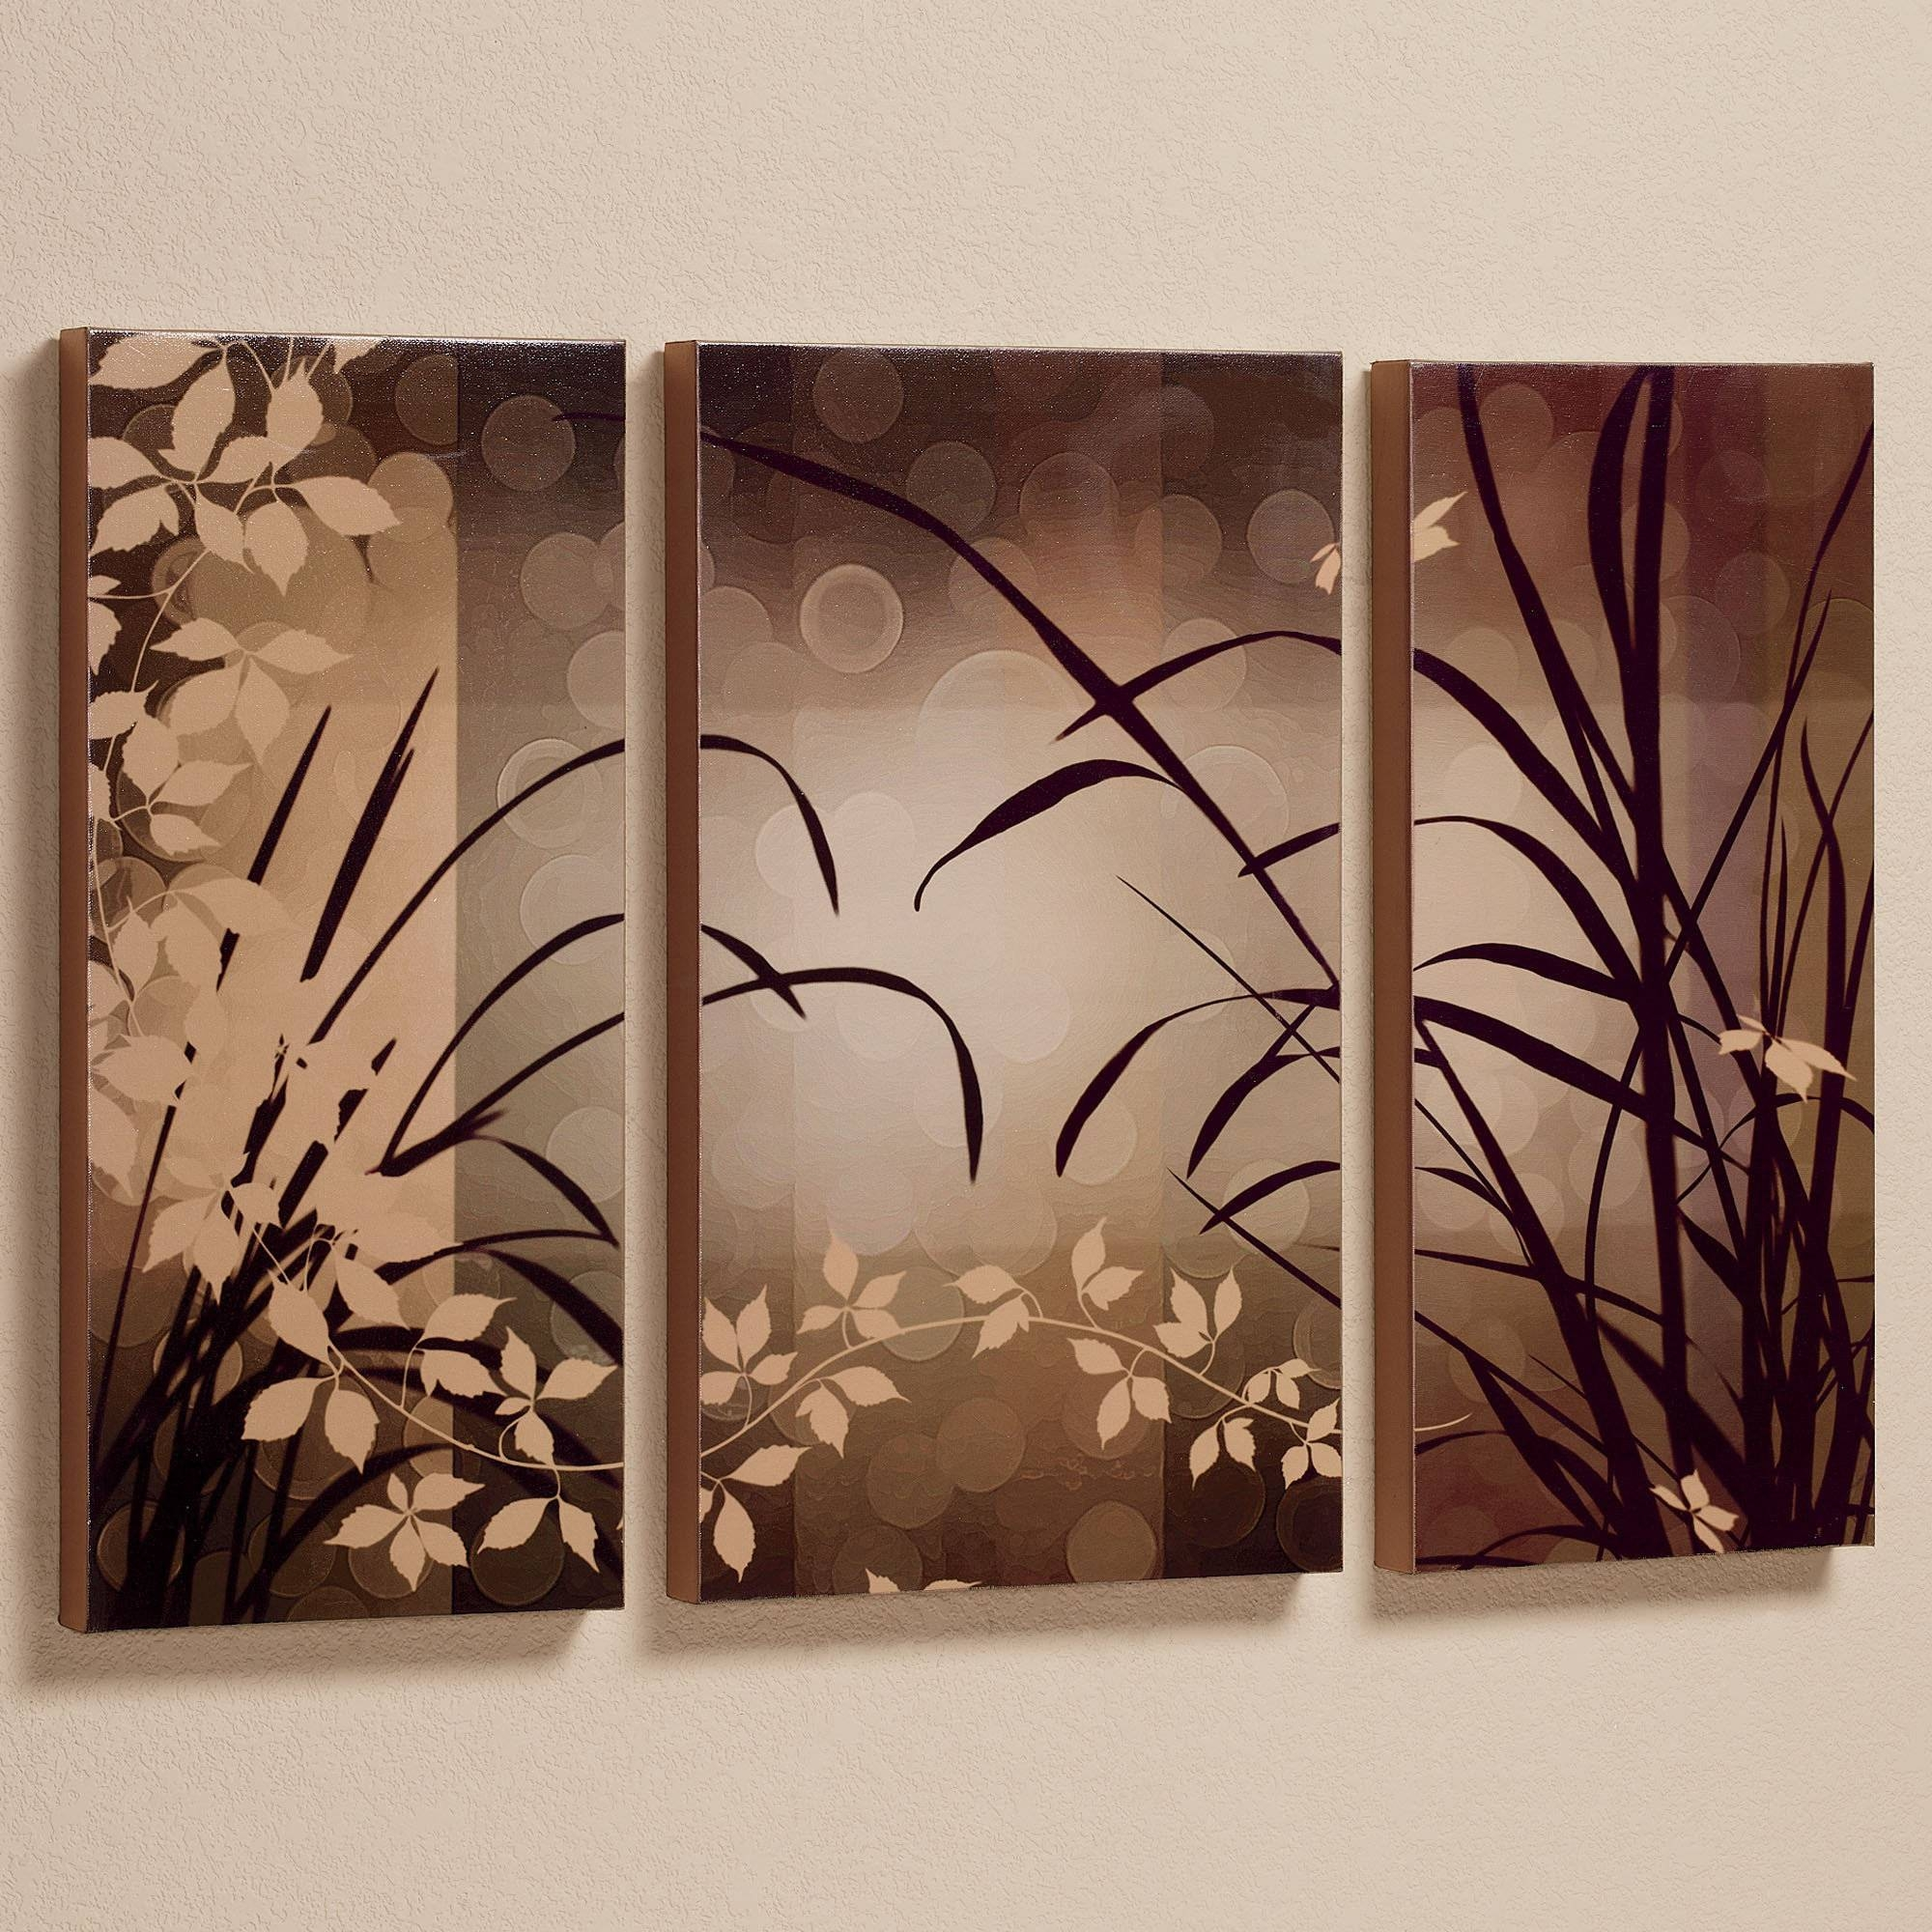 Fresh Design Canvas Wall Art Sets Interesting Matching Sets Store With Recent Matching Canvas Wall Art (View 12 of 20)